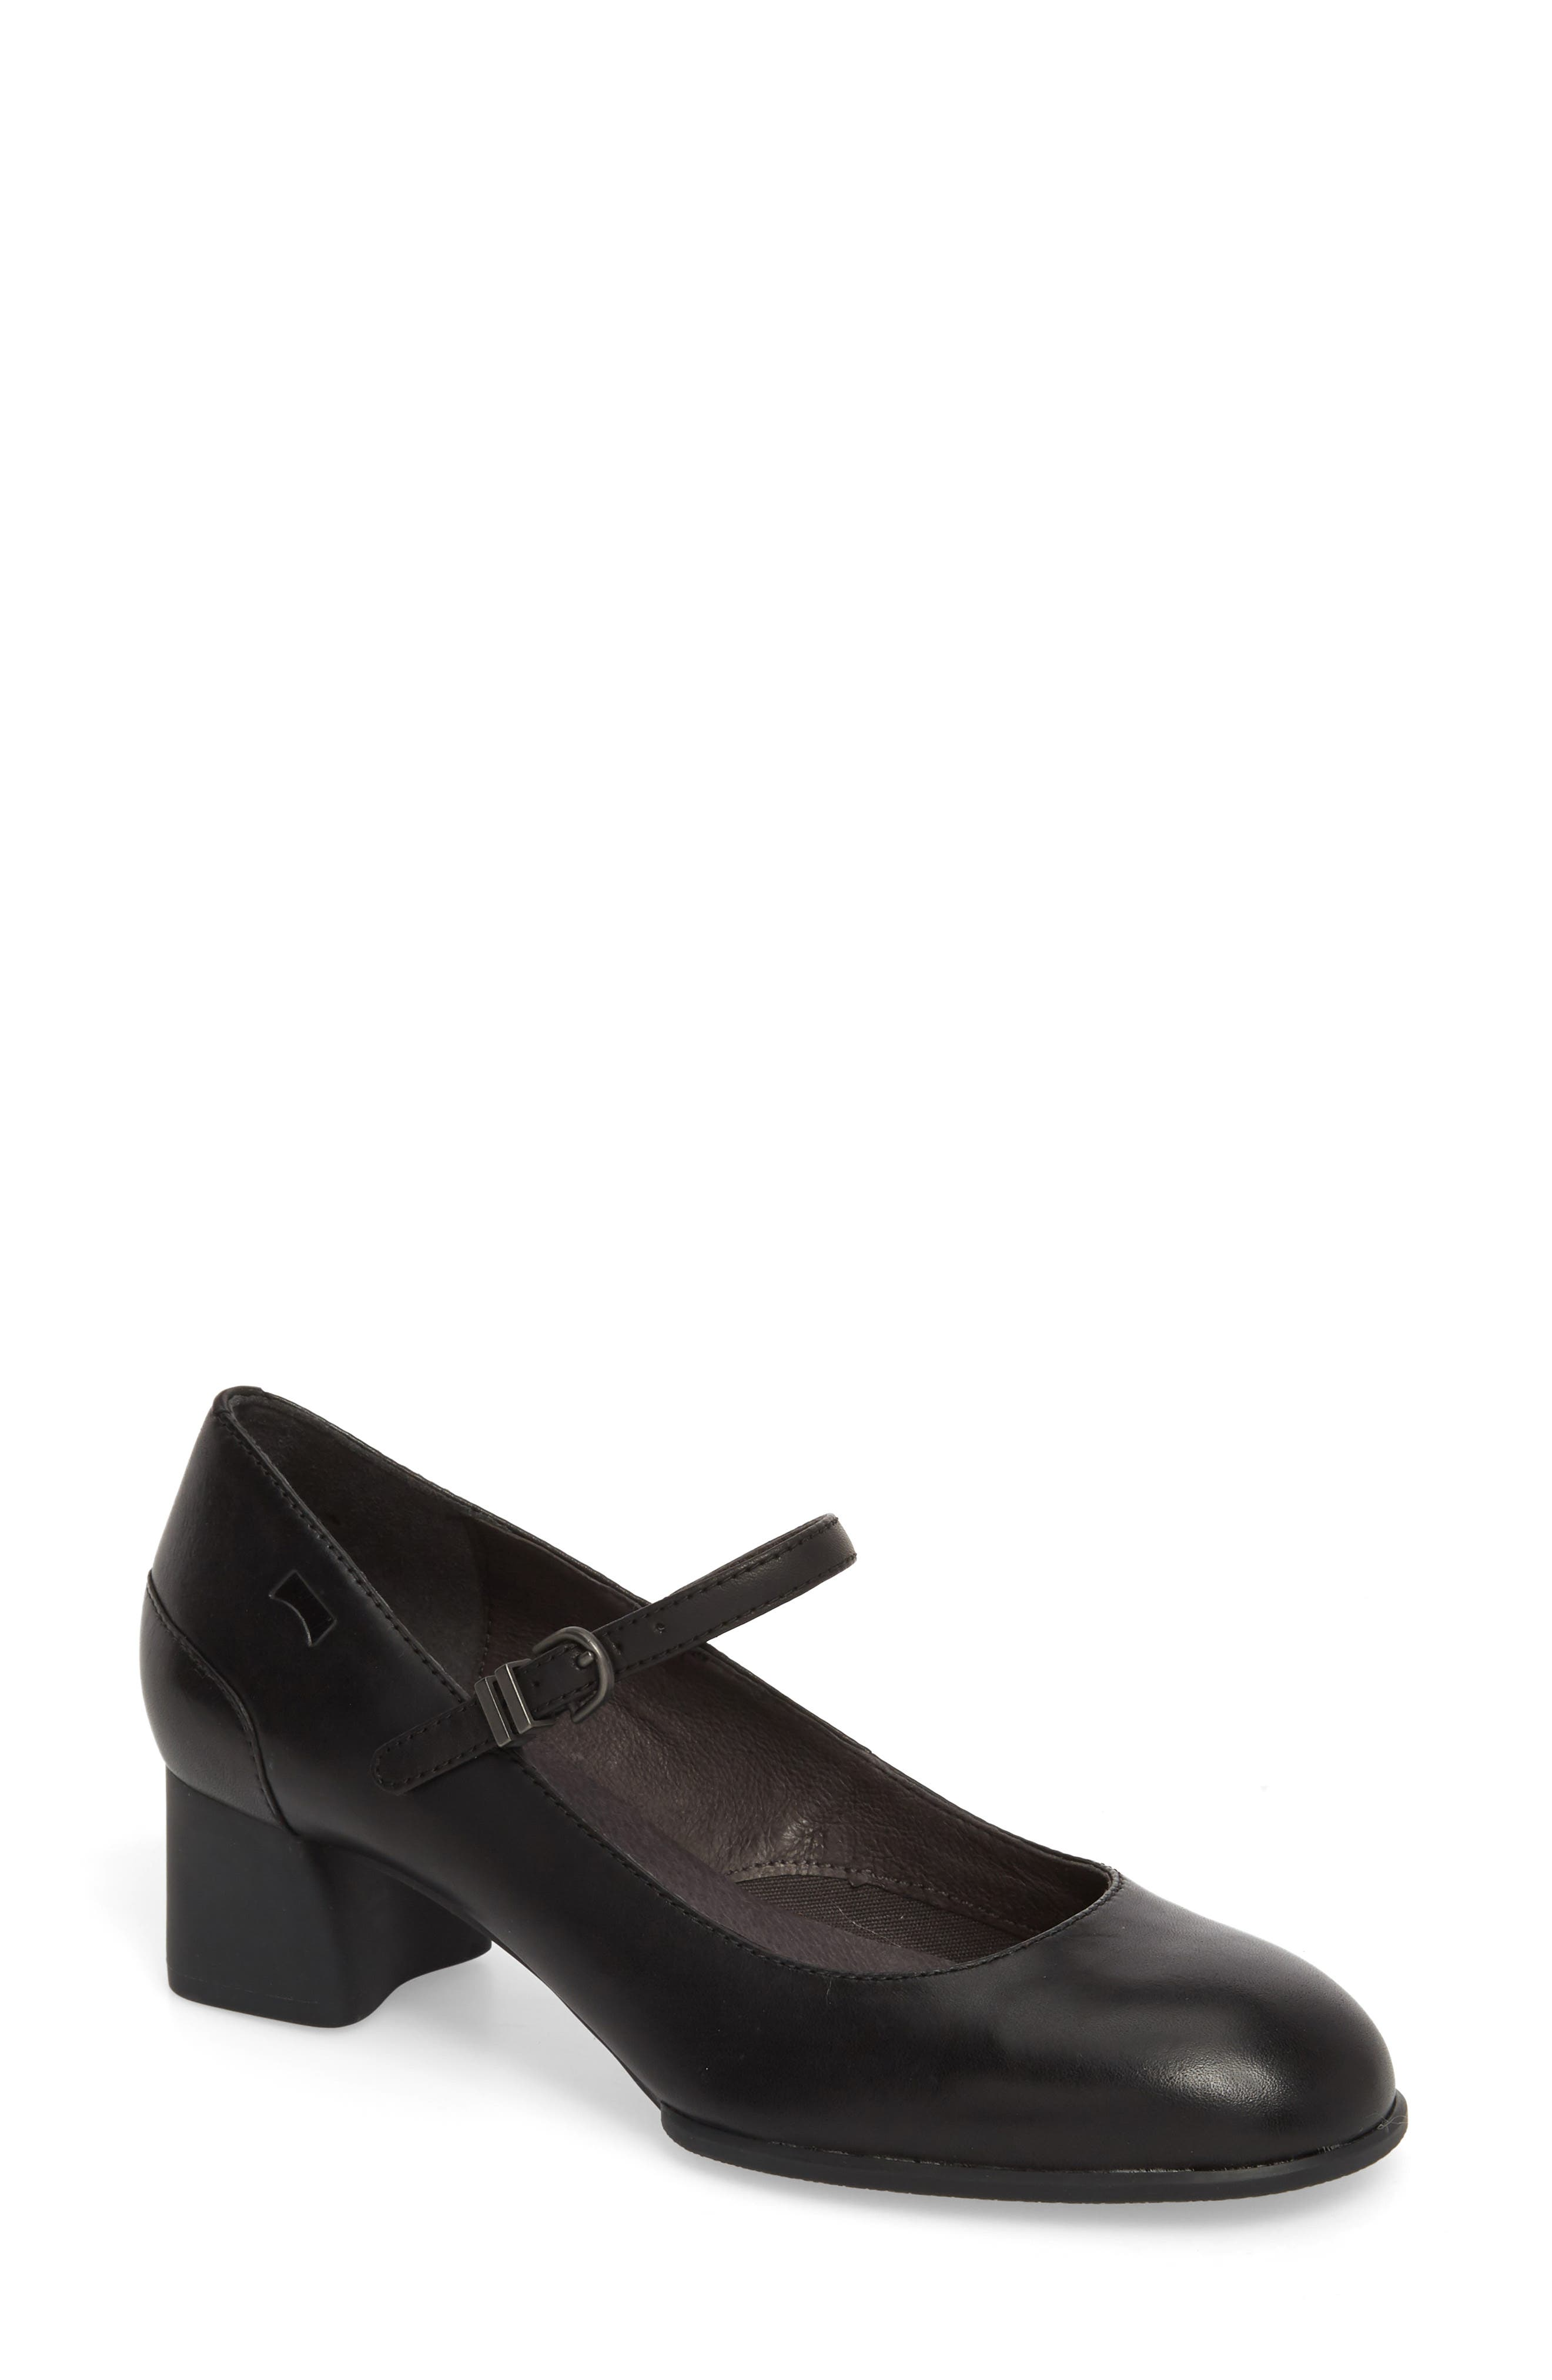 Katie Mary Jane Pump,                         Main,                         color, BLACK LEATHER